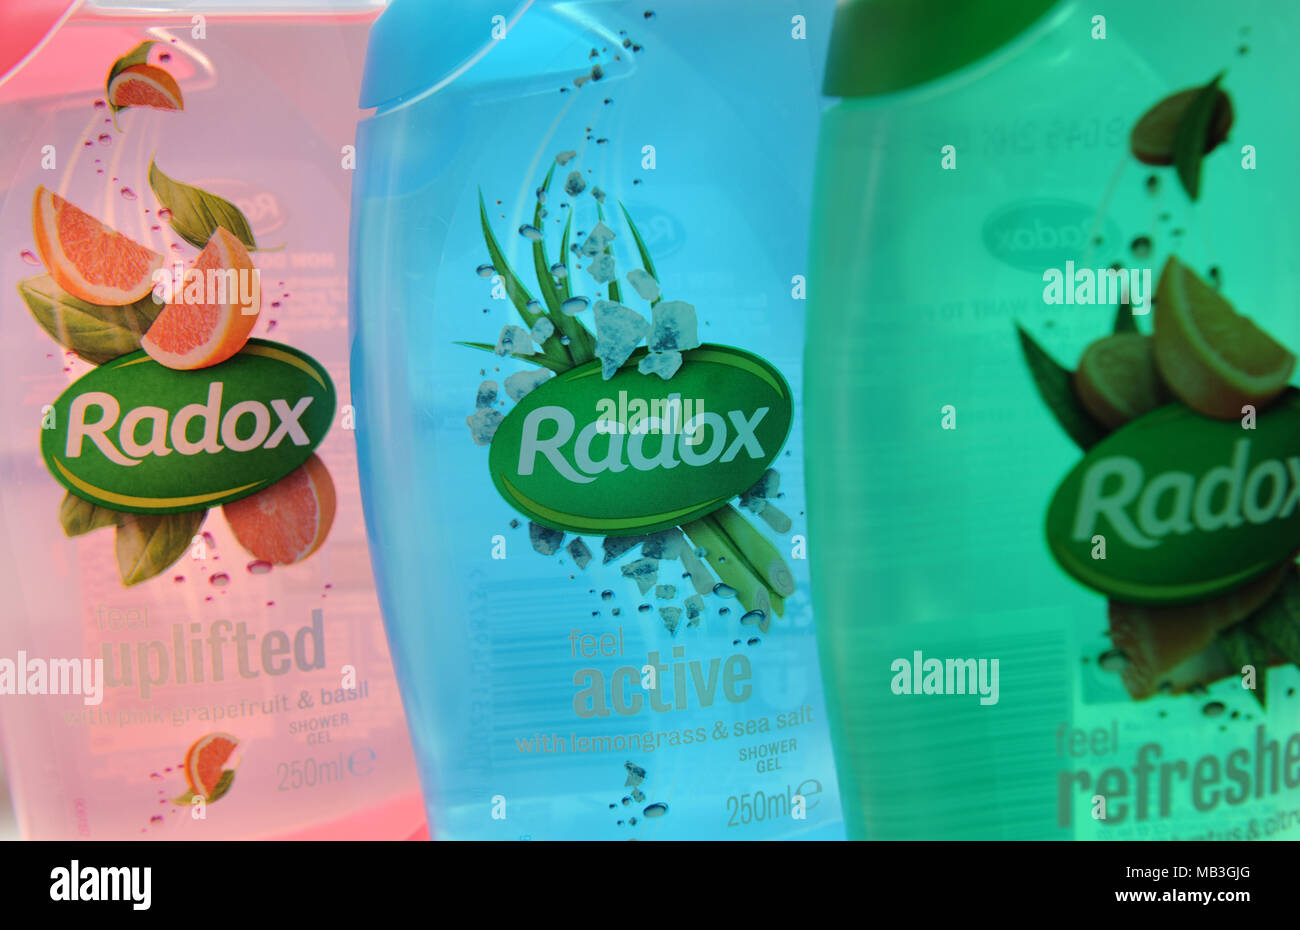 Radox toiletries lined up in a bathroom - Stock Image